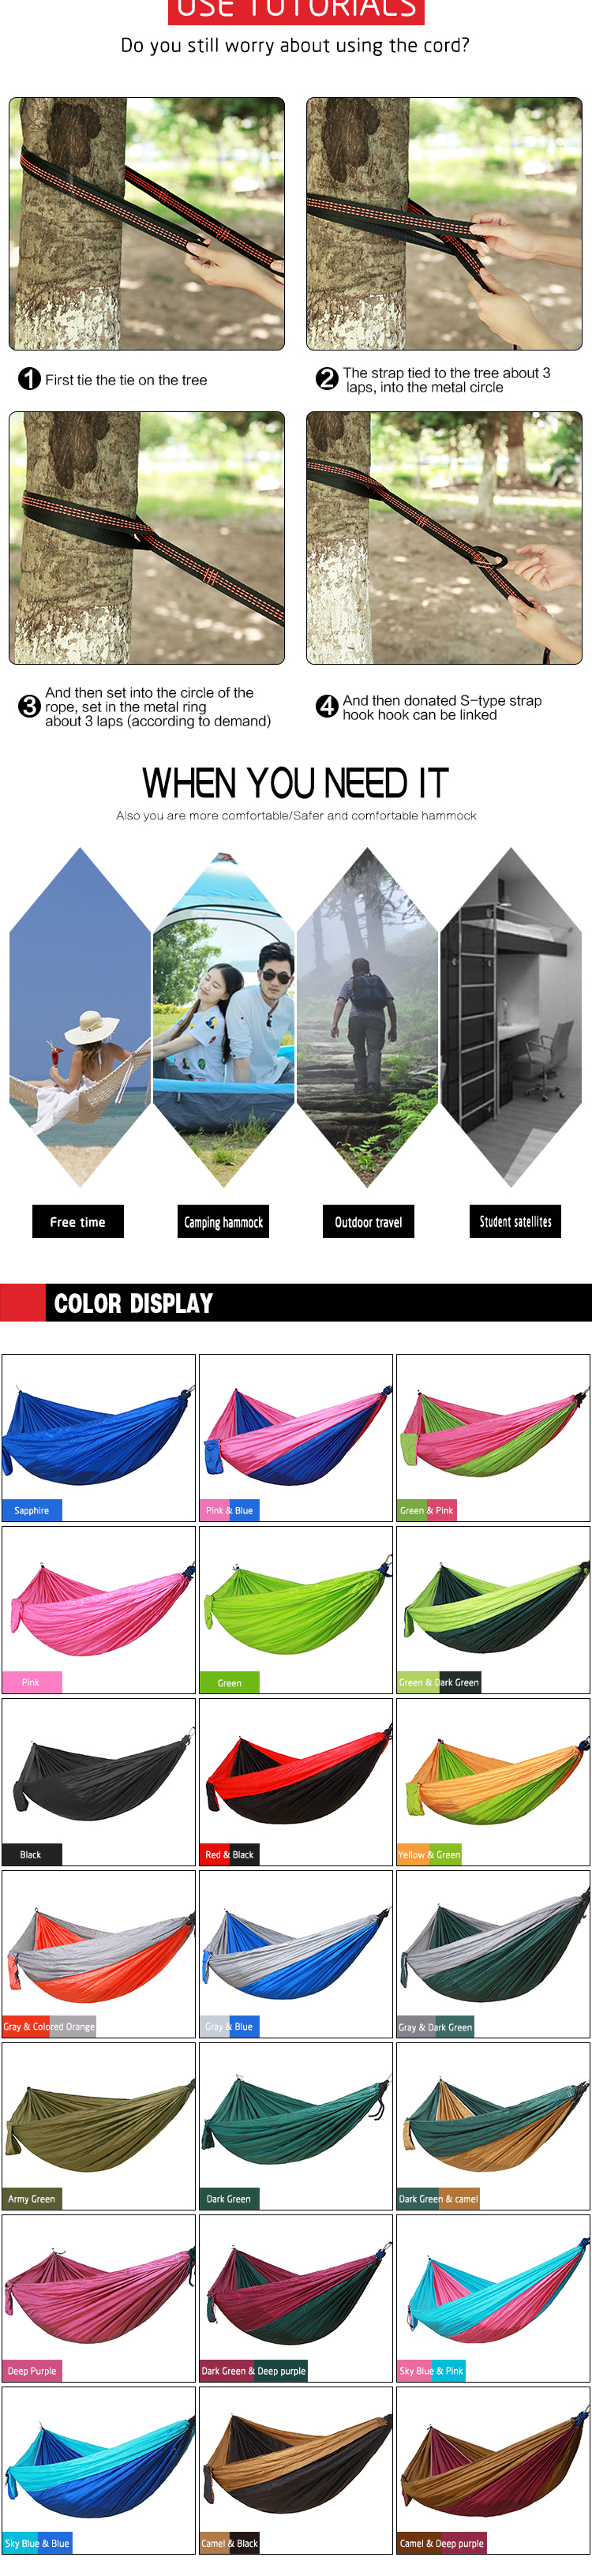 Double person Hammock Portable Parachute Nylon Fabric Travel Ultralight Camping hamak Outdoor Furniture casual hanging bed hamma 6